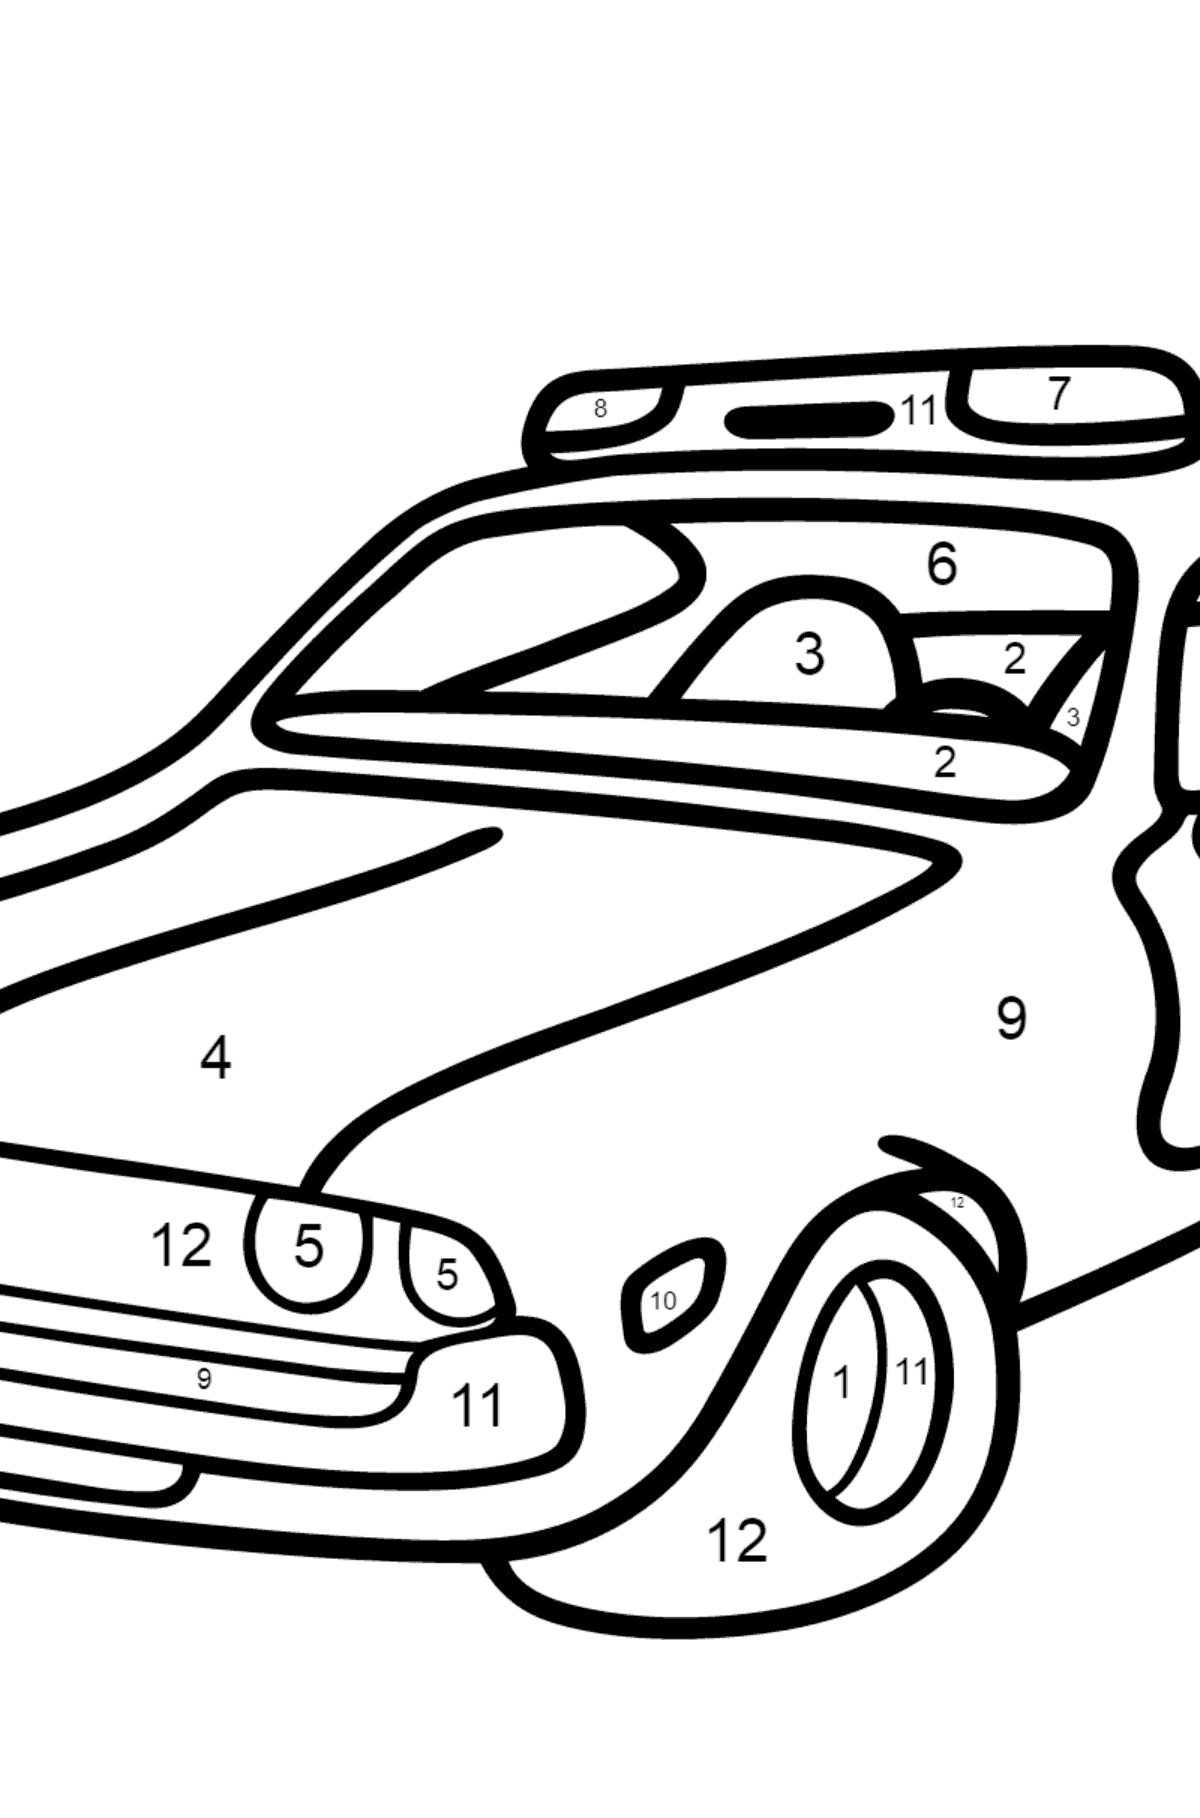 Coloring Page - A Dark Gray Police Car for Children  - Color by Number